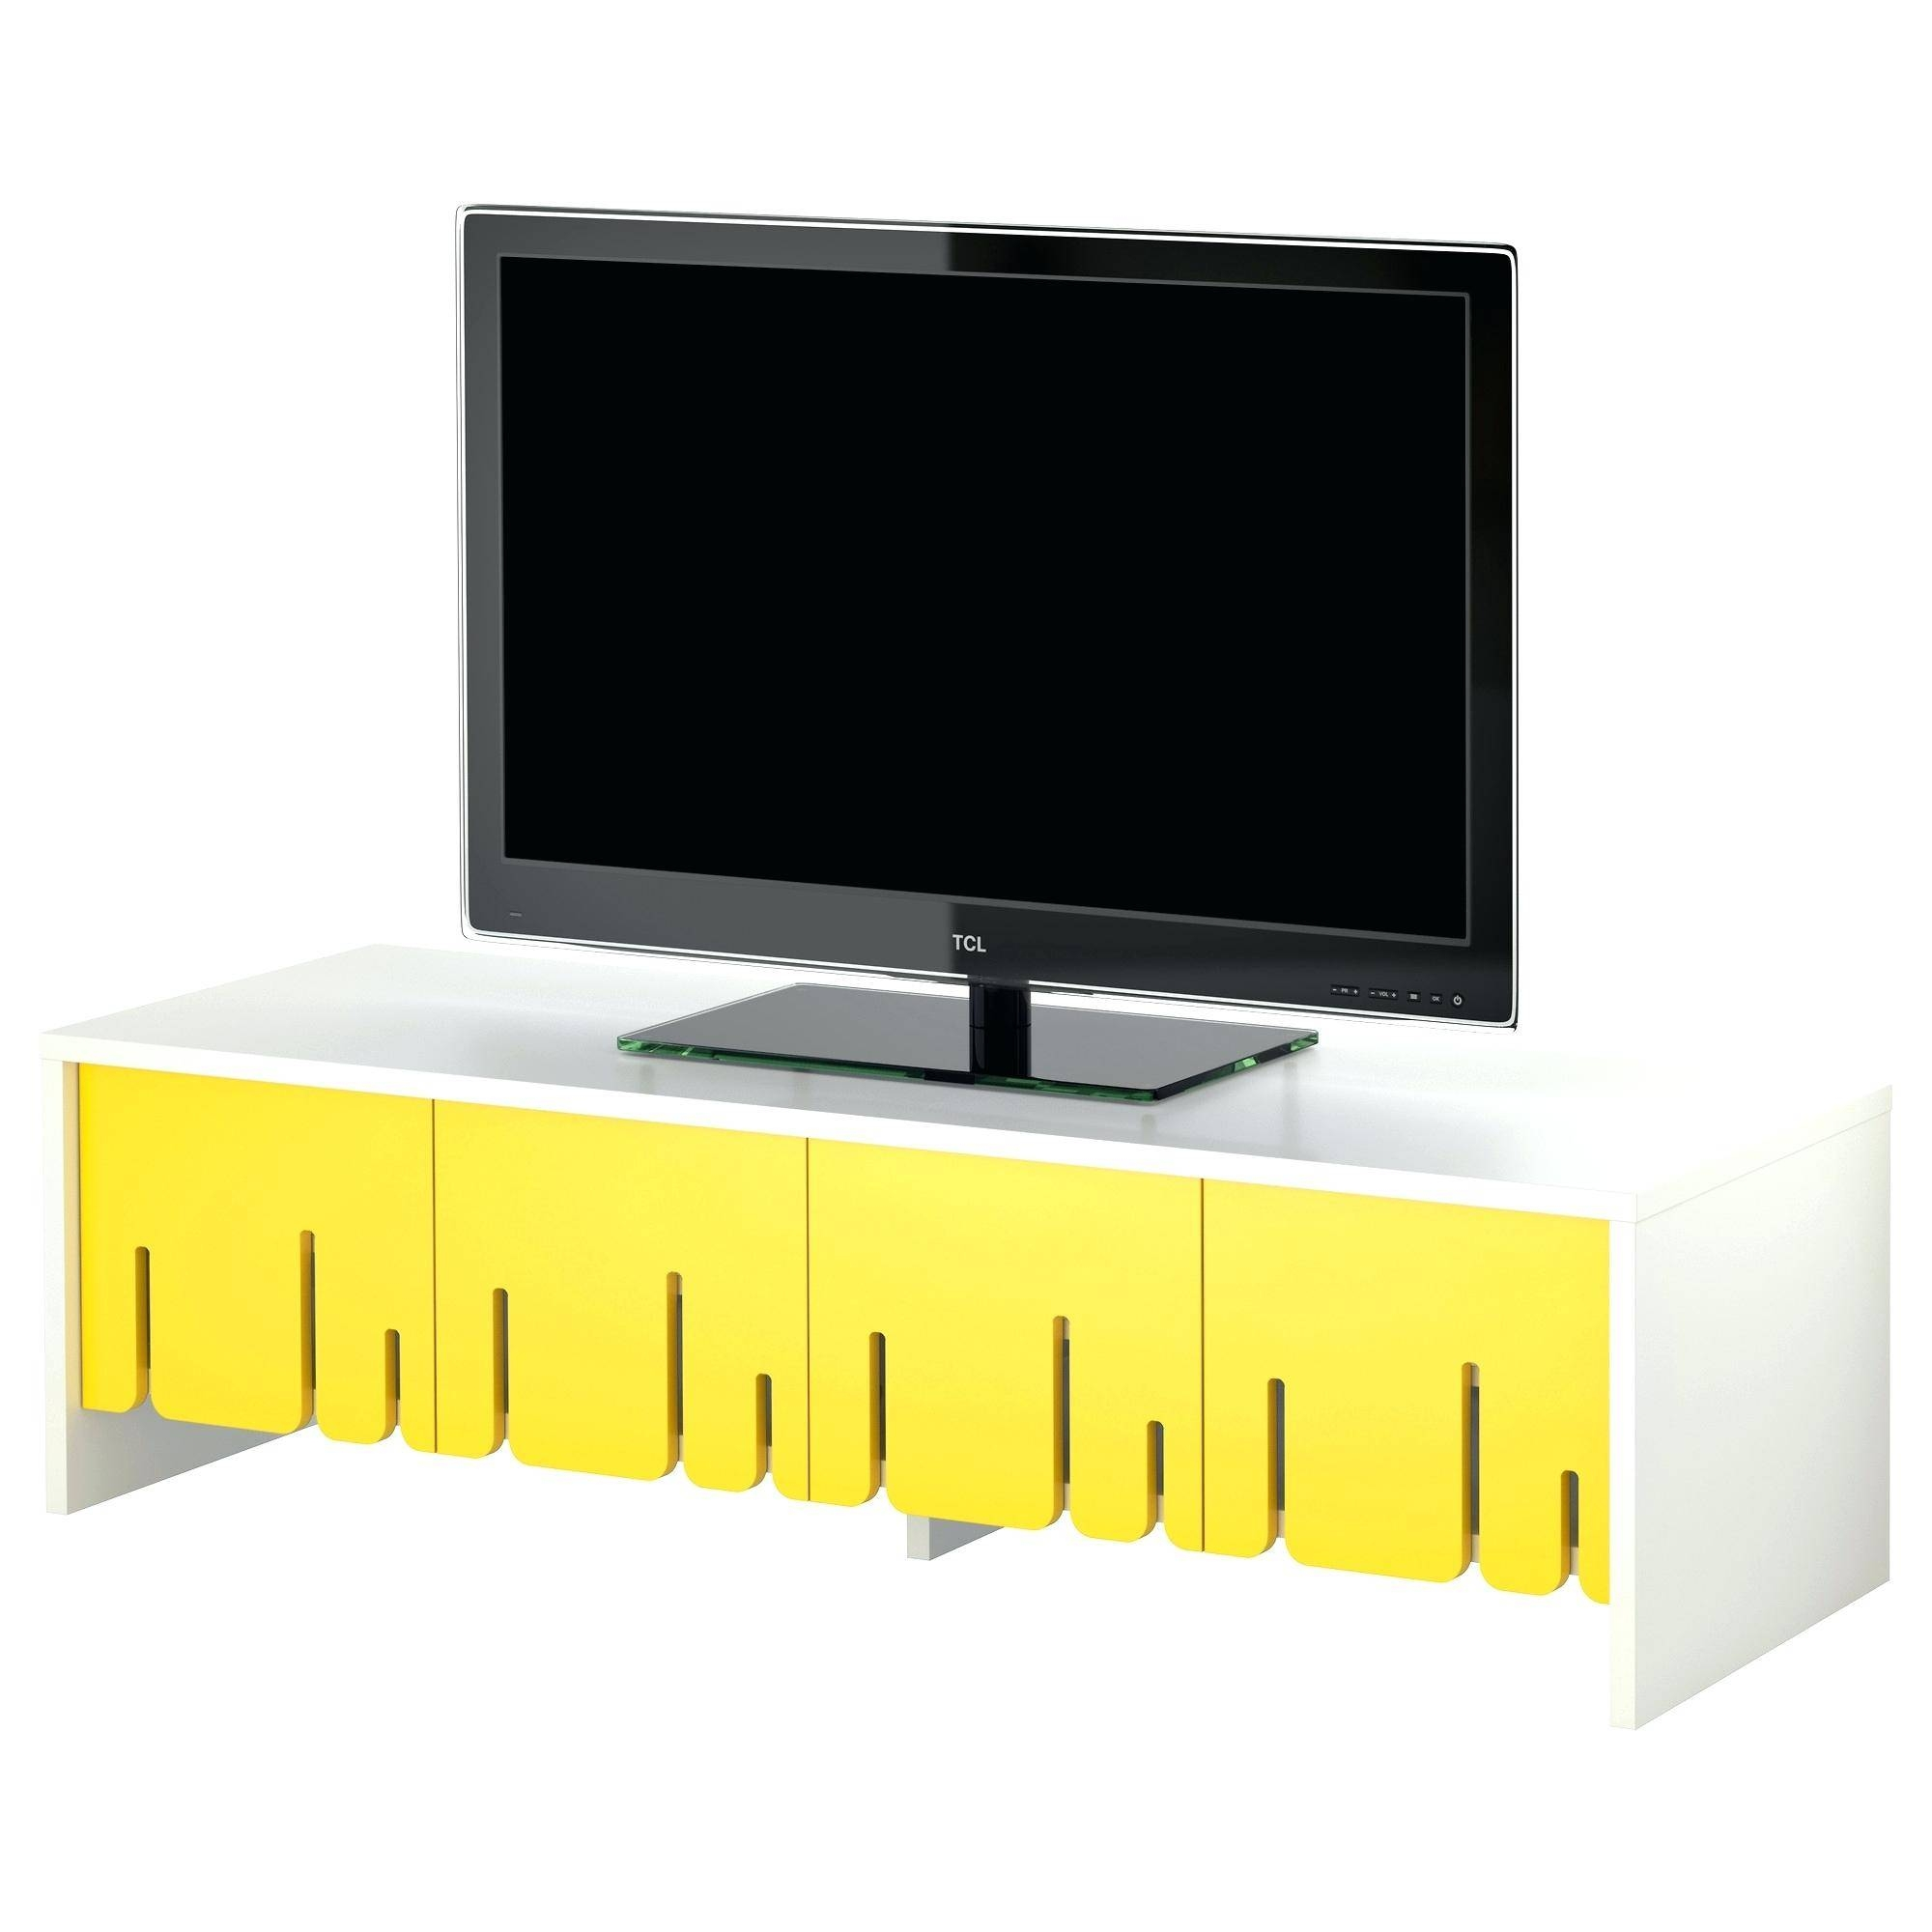 Tv Stand : Pine Tv Stand Ikea Furniture Ideas Superb Pine Tv Stand in Yellow Tv Stands (Image 12 of 15)